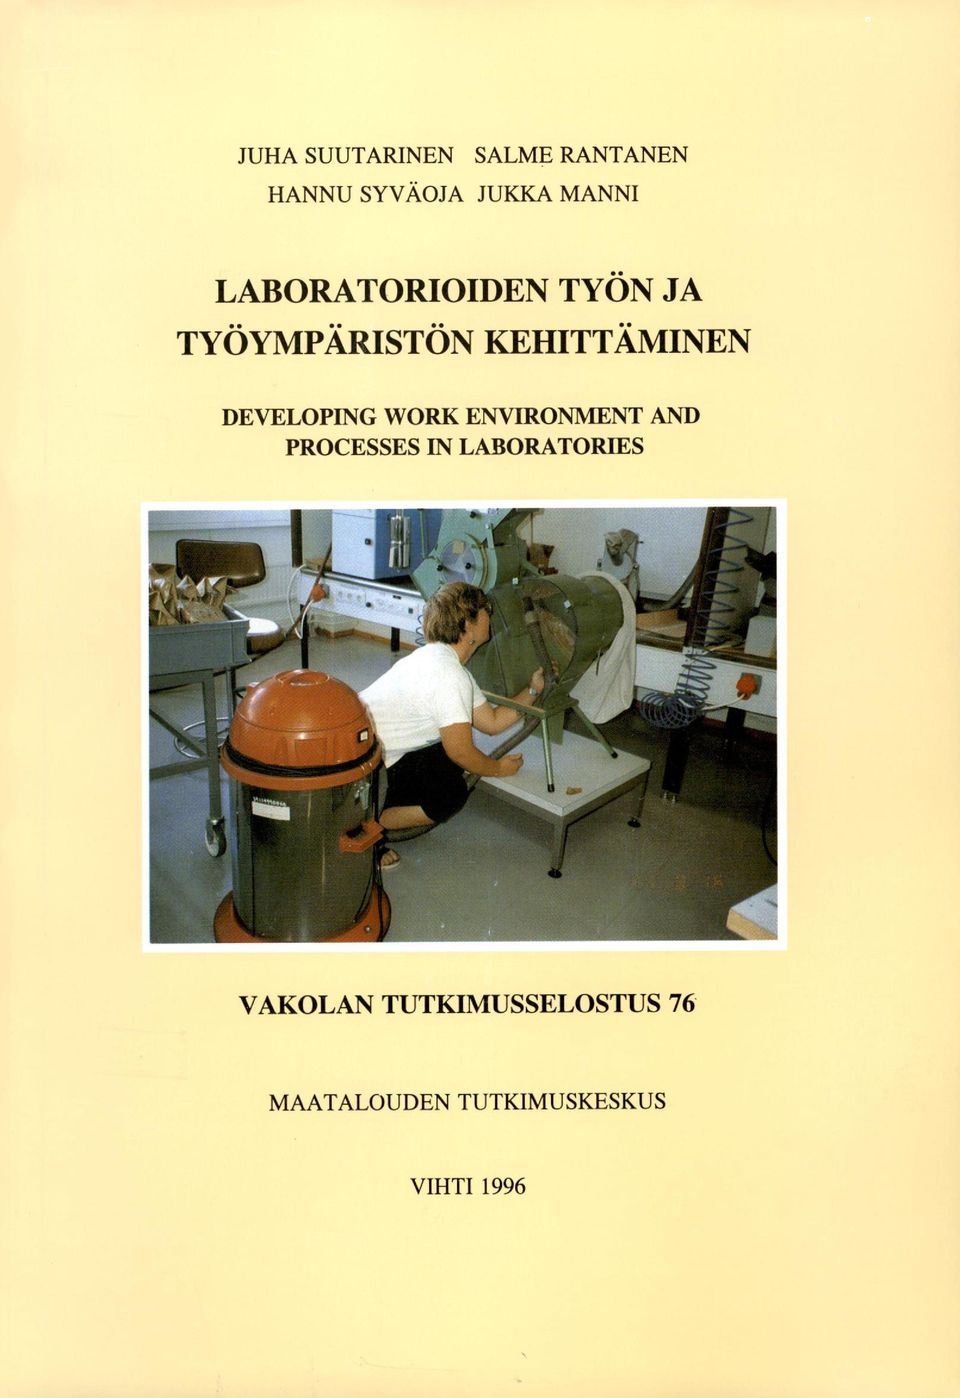 DEVELOPING WORK ENVIRONMENT AND PROCESSES IN LABORATORIES